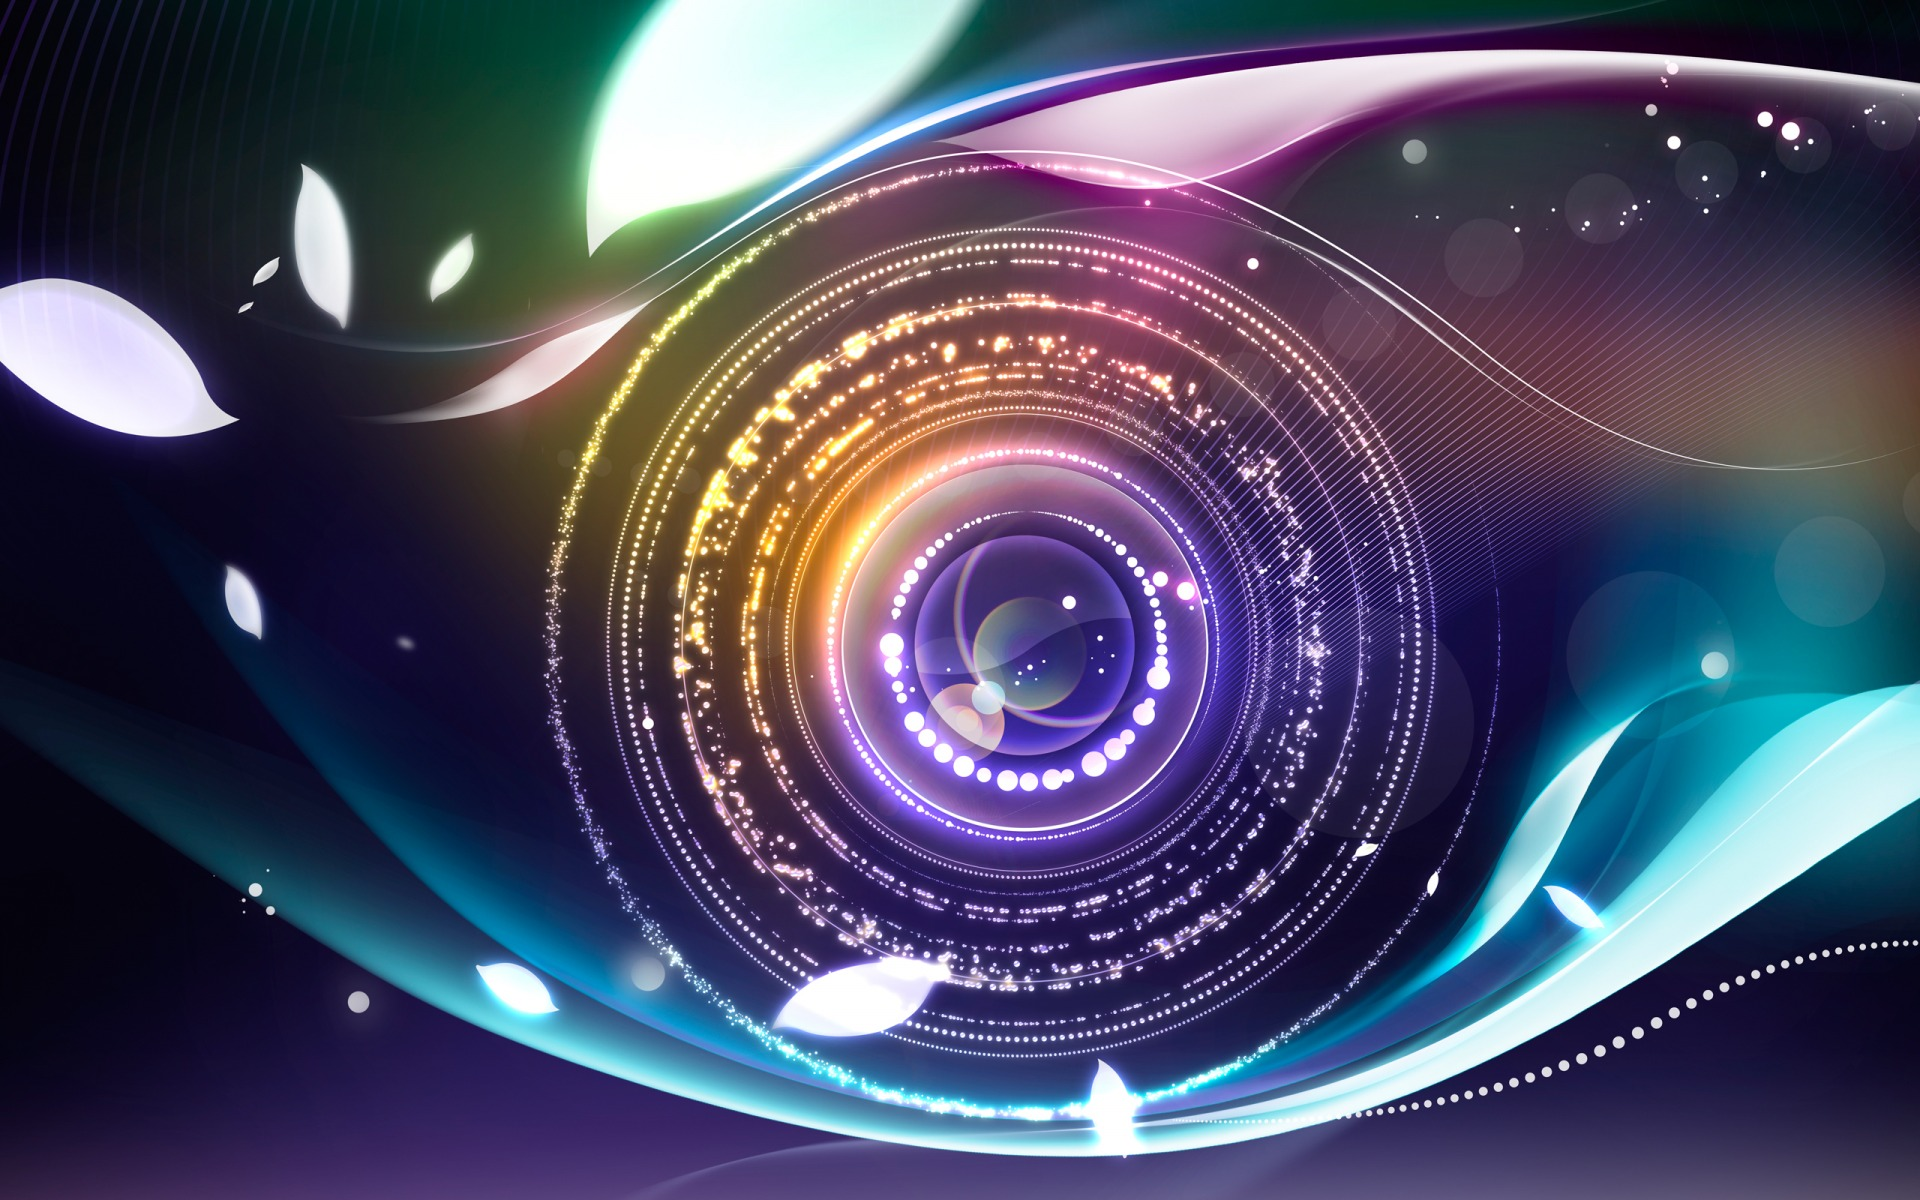 Digital Abstract Eye Wallpapers | HD Wallpapers | ID #8566